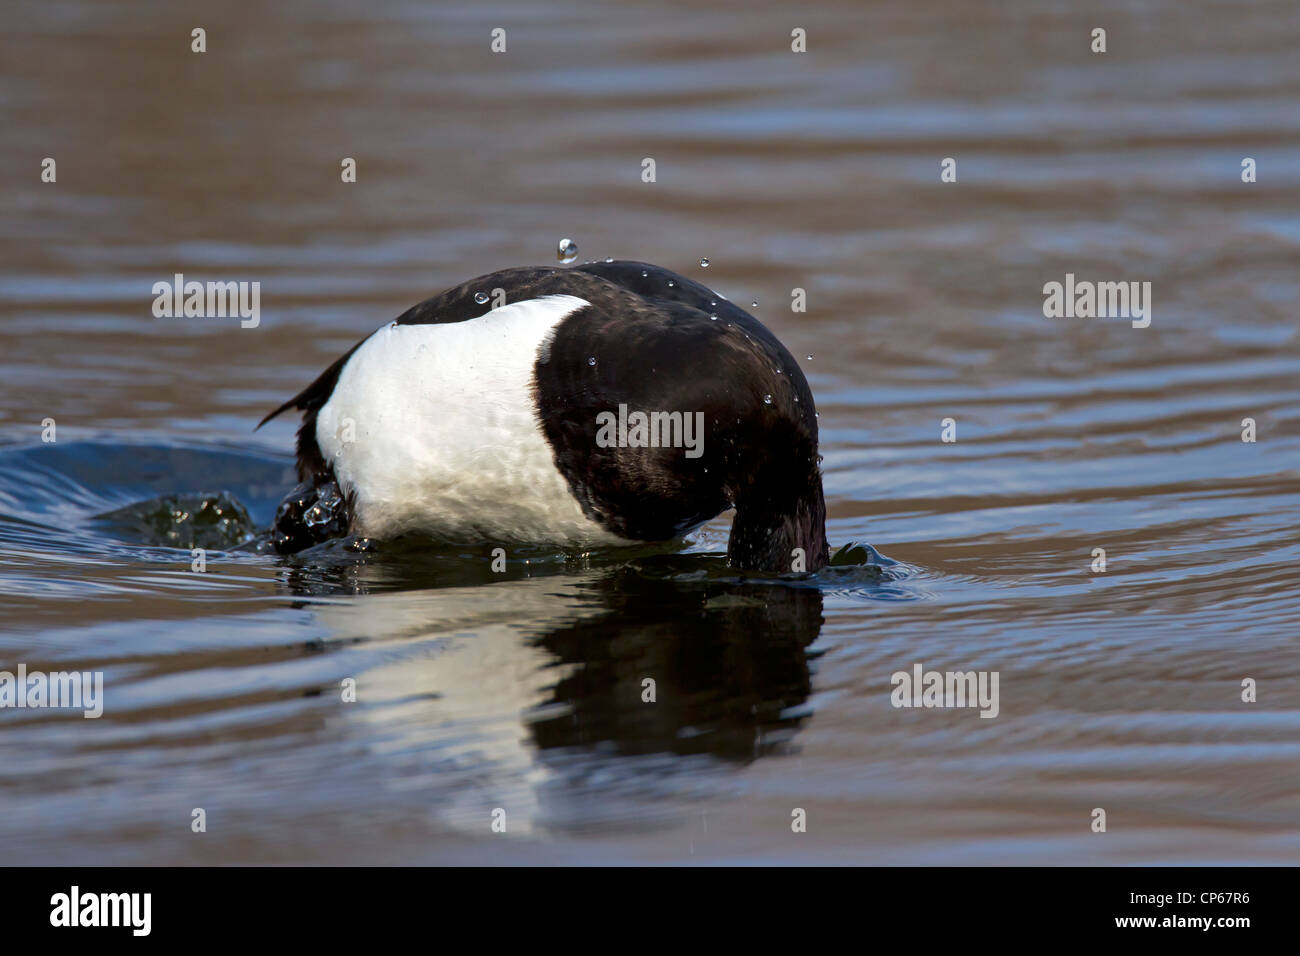 Tufted duck (Aythya fuligula) diving in water of lake, Germany - Stock Image